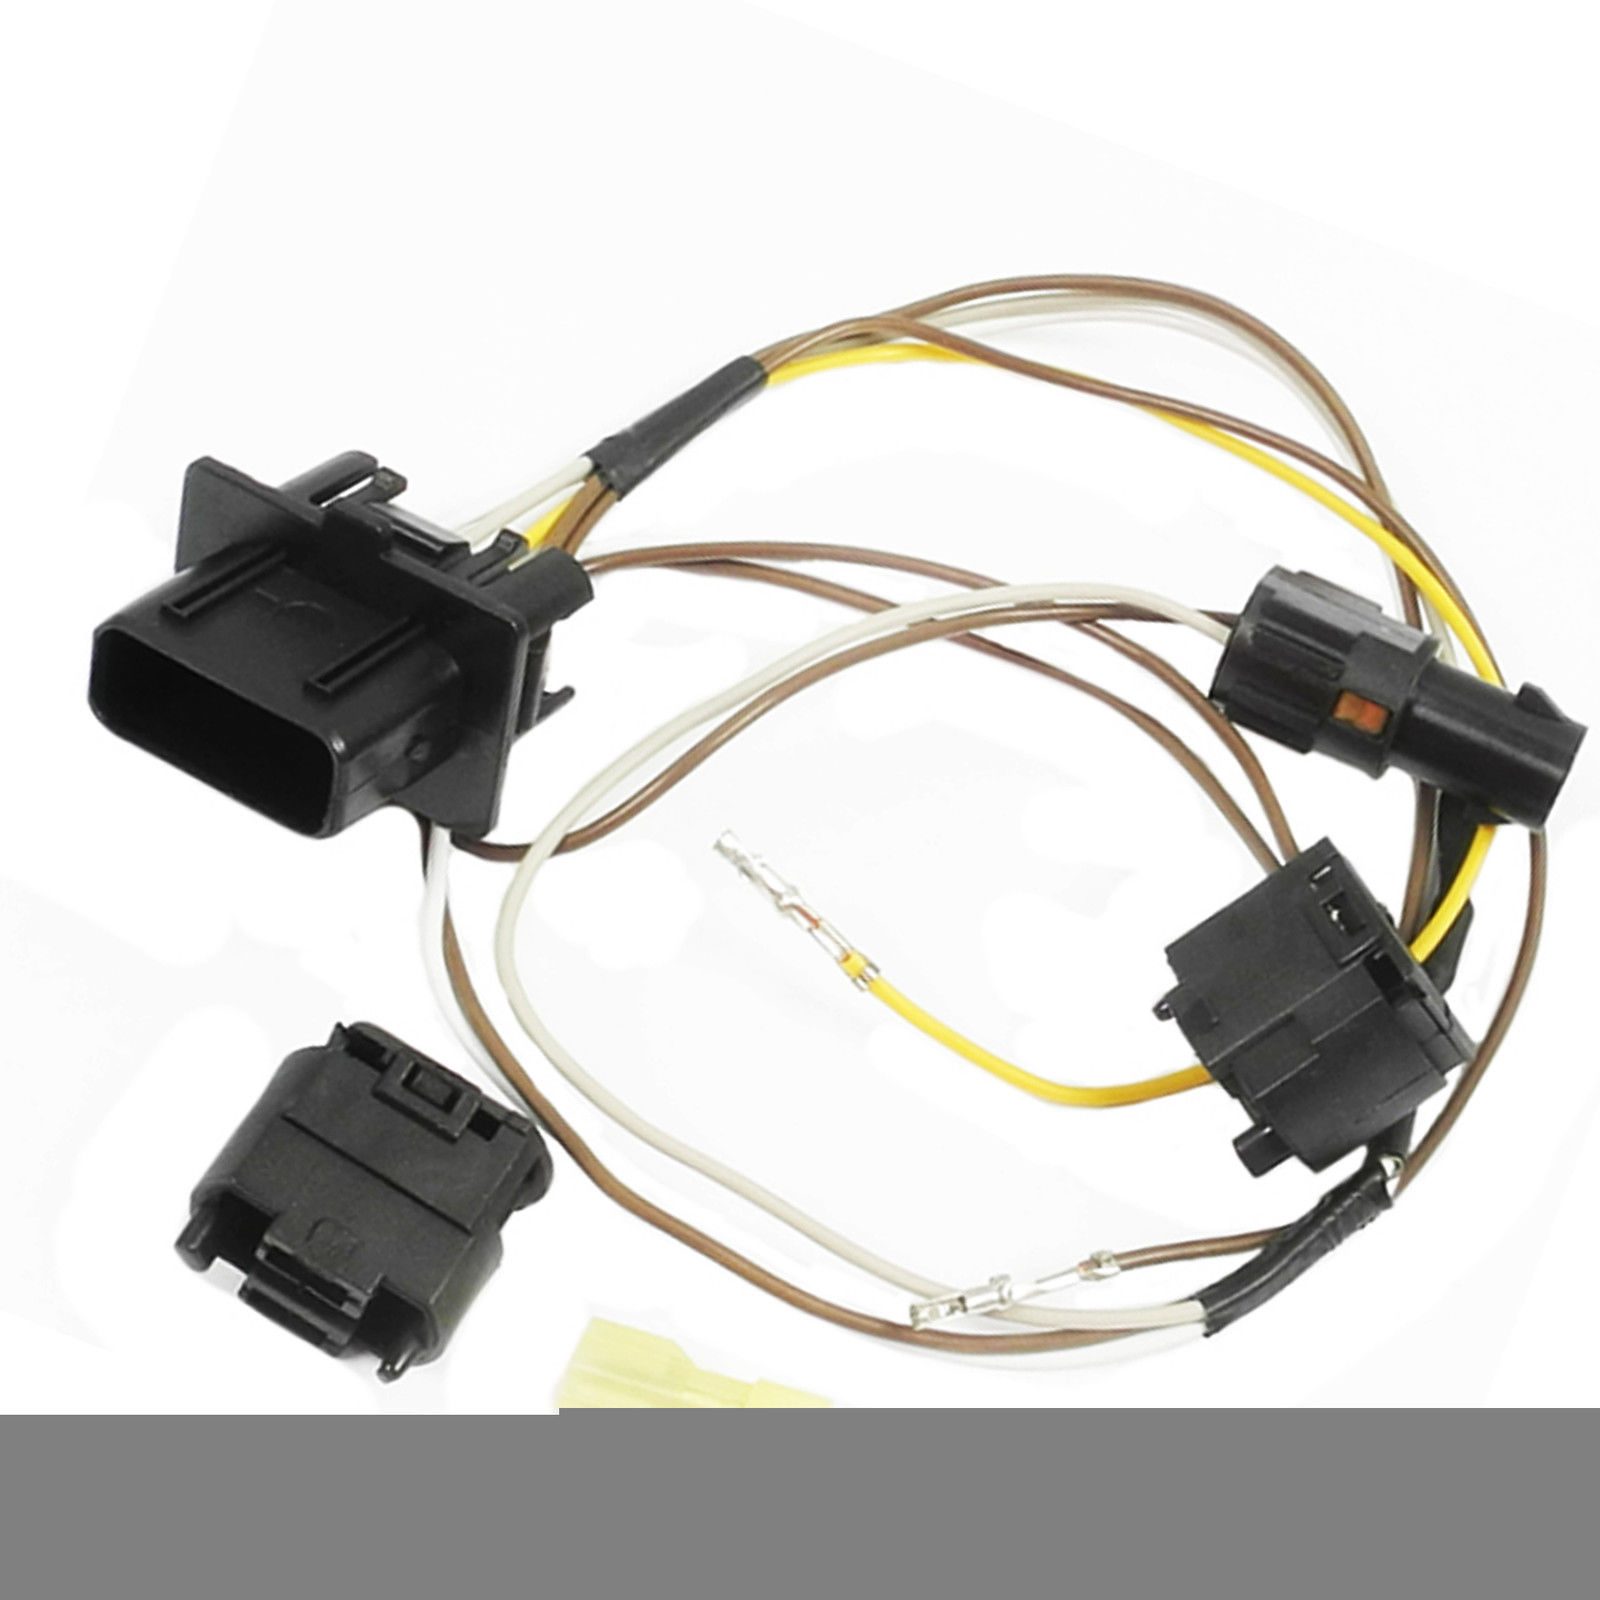 hight resolution of for right headlight wire harness connector repair kit c120 w208 wiring harness connectors repair